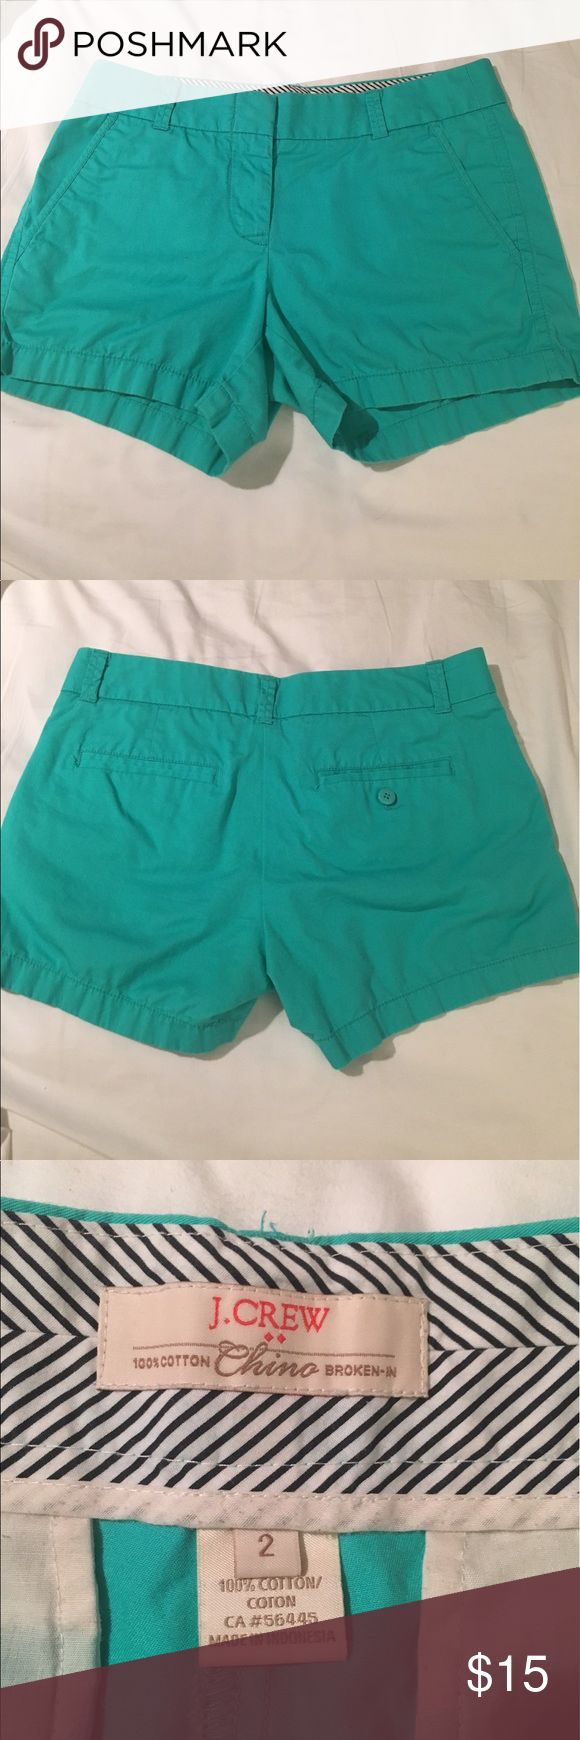 """J. Crew Chino Short These aqua shorts scream summertime! The 3"""" inseam and """"broken in"""" design make them super comfy. No visible signs of wear. Make me an offer, and don't forget you can bundle for a discount! :) J. Crew Shorts"""